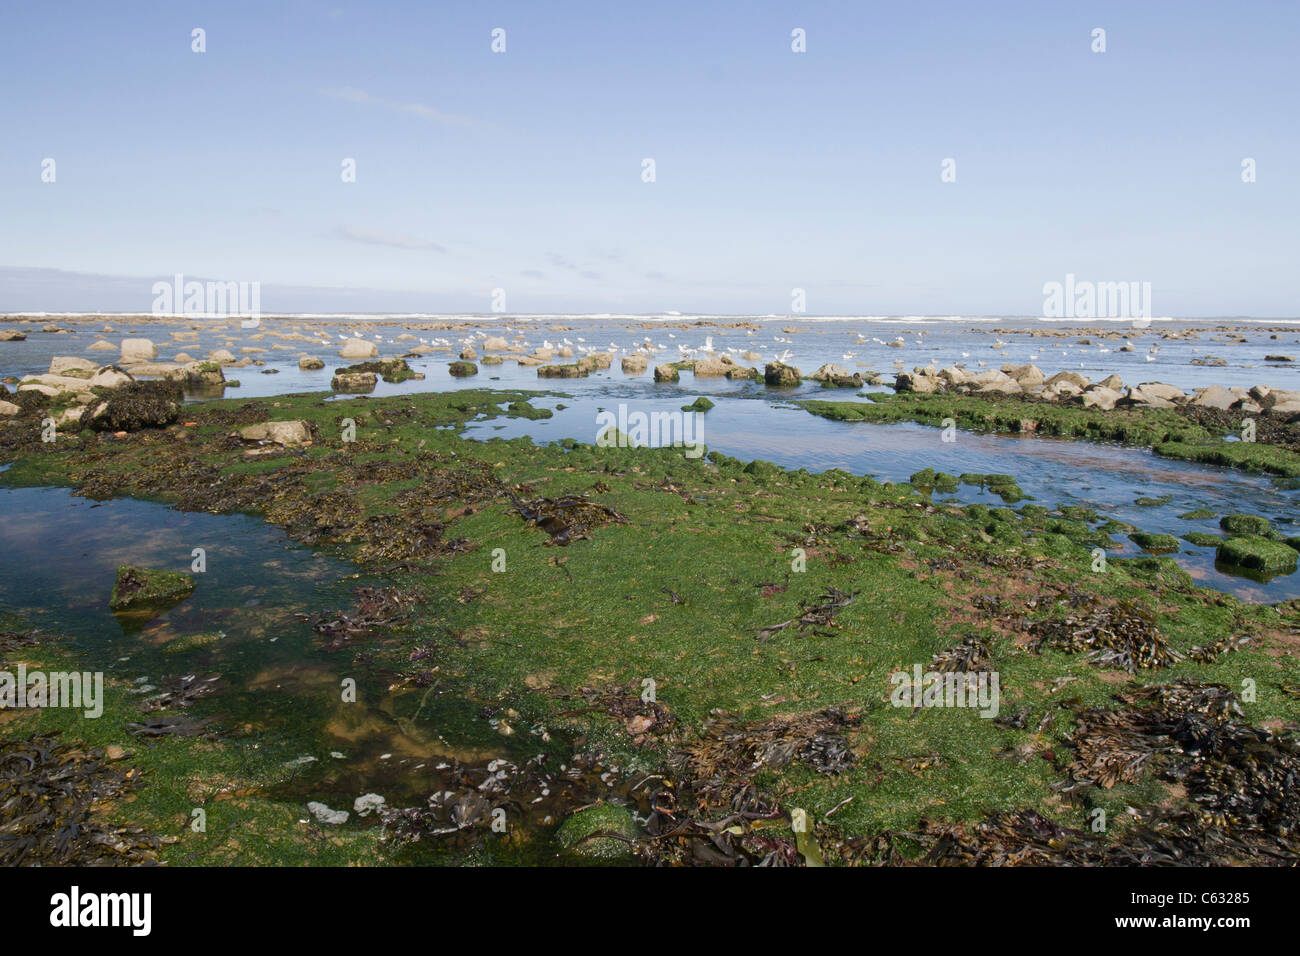 Scarborough north bay and Coastline in Yorkshire England - Stock Image